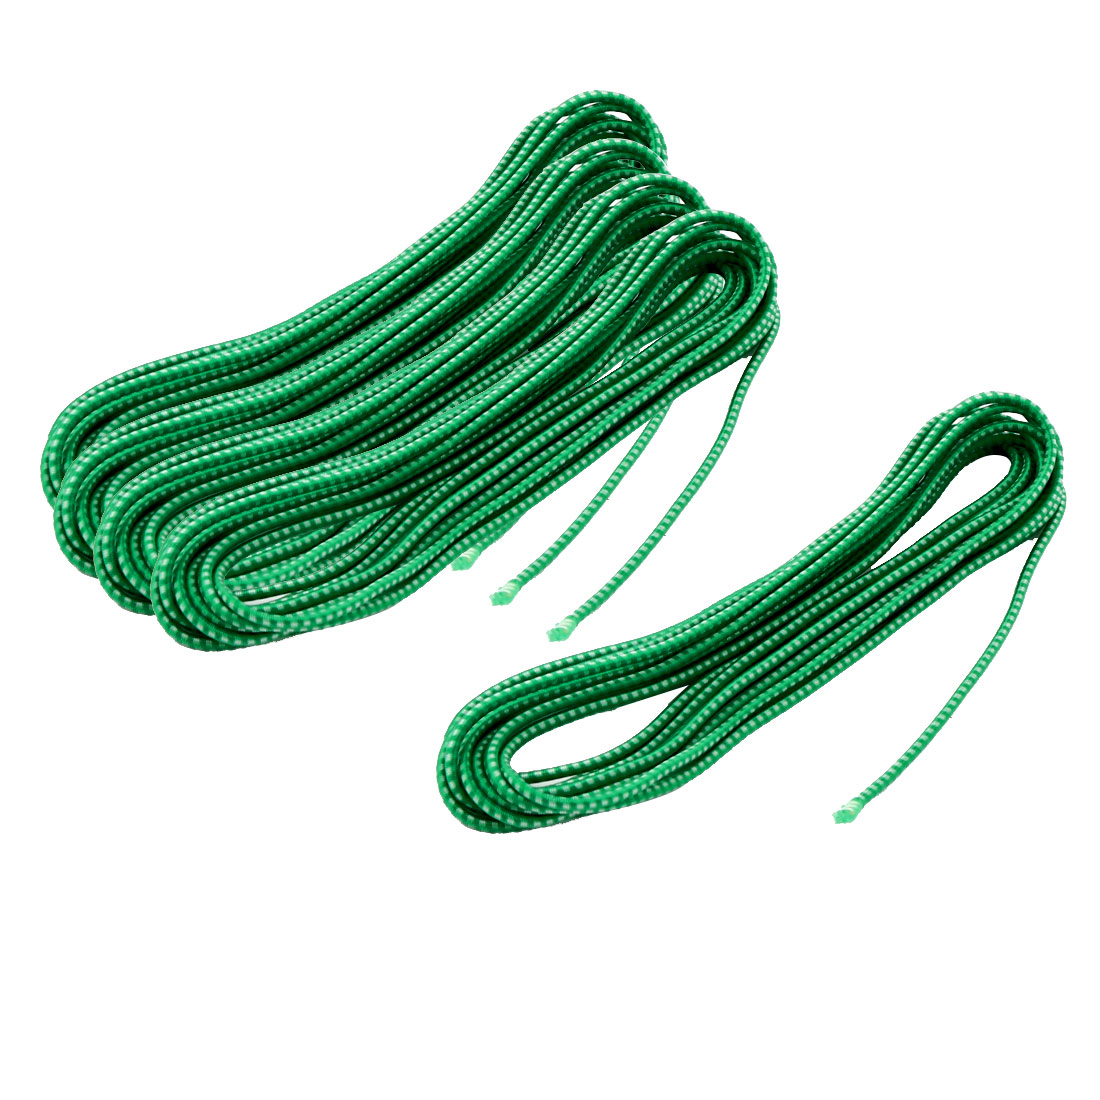 Household Rubber Pants Trousers Sewing Stretchy Elastic String Rope Green 5pcs